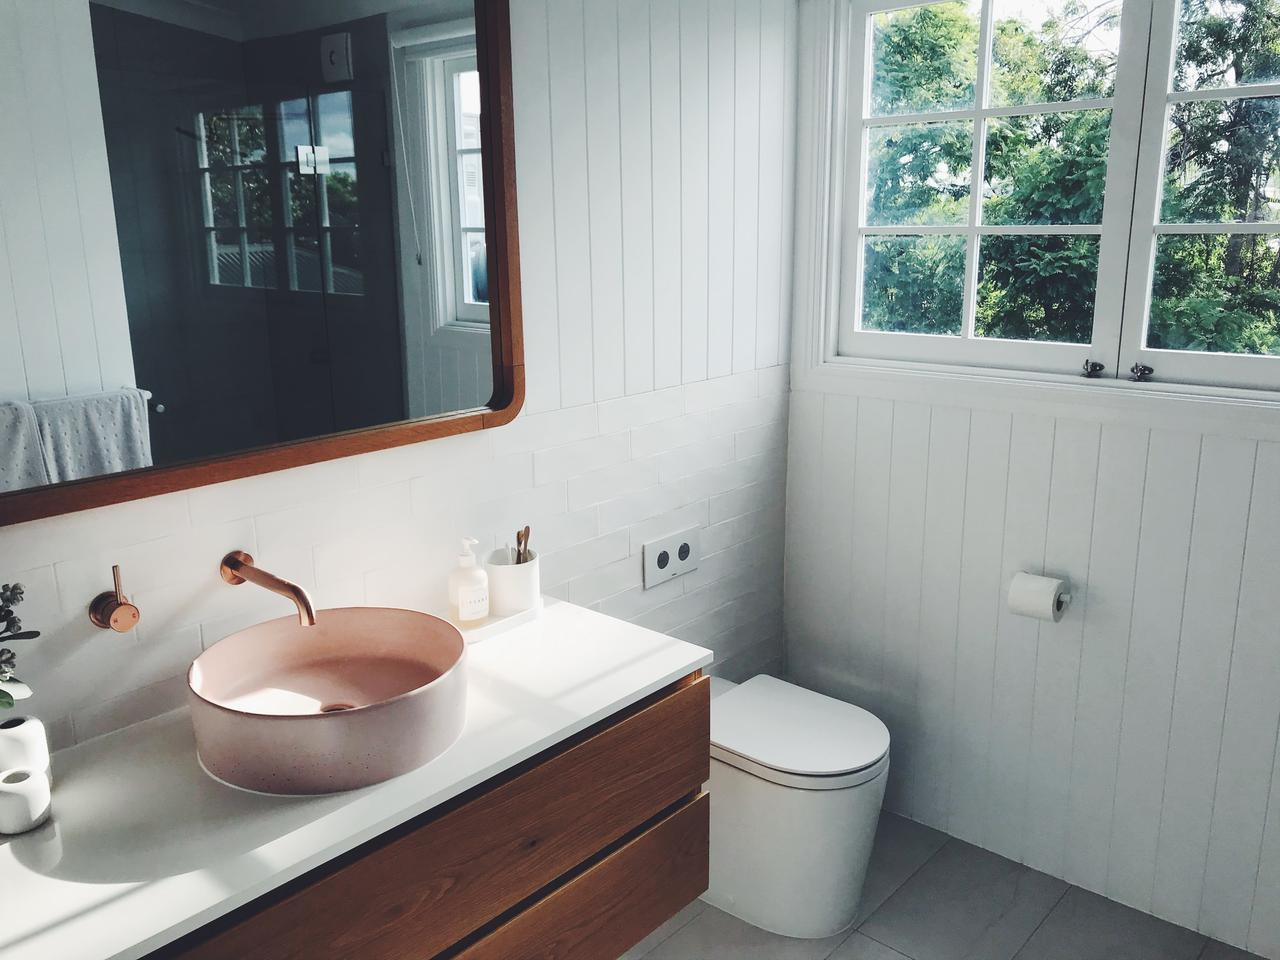 A bathroom remodel in Rockaway, NJ can make you fall in love with your home again.